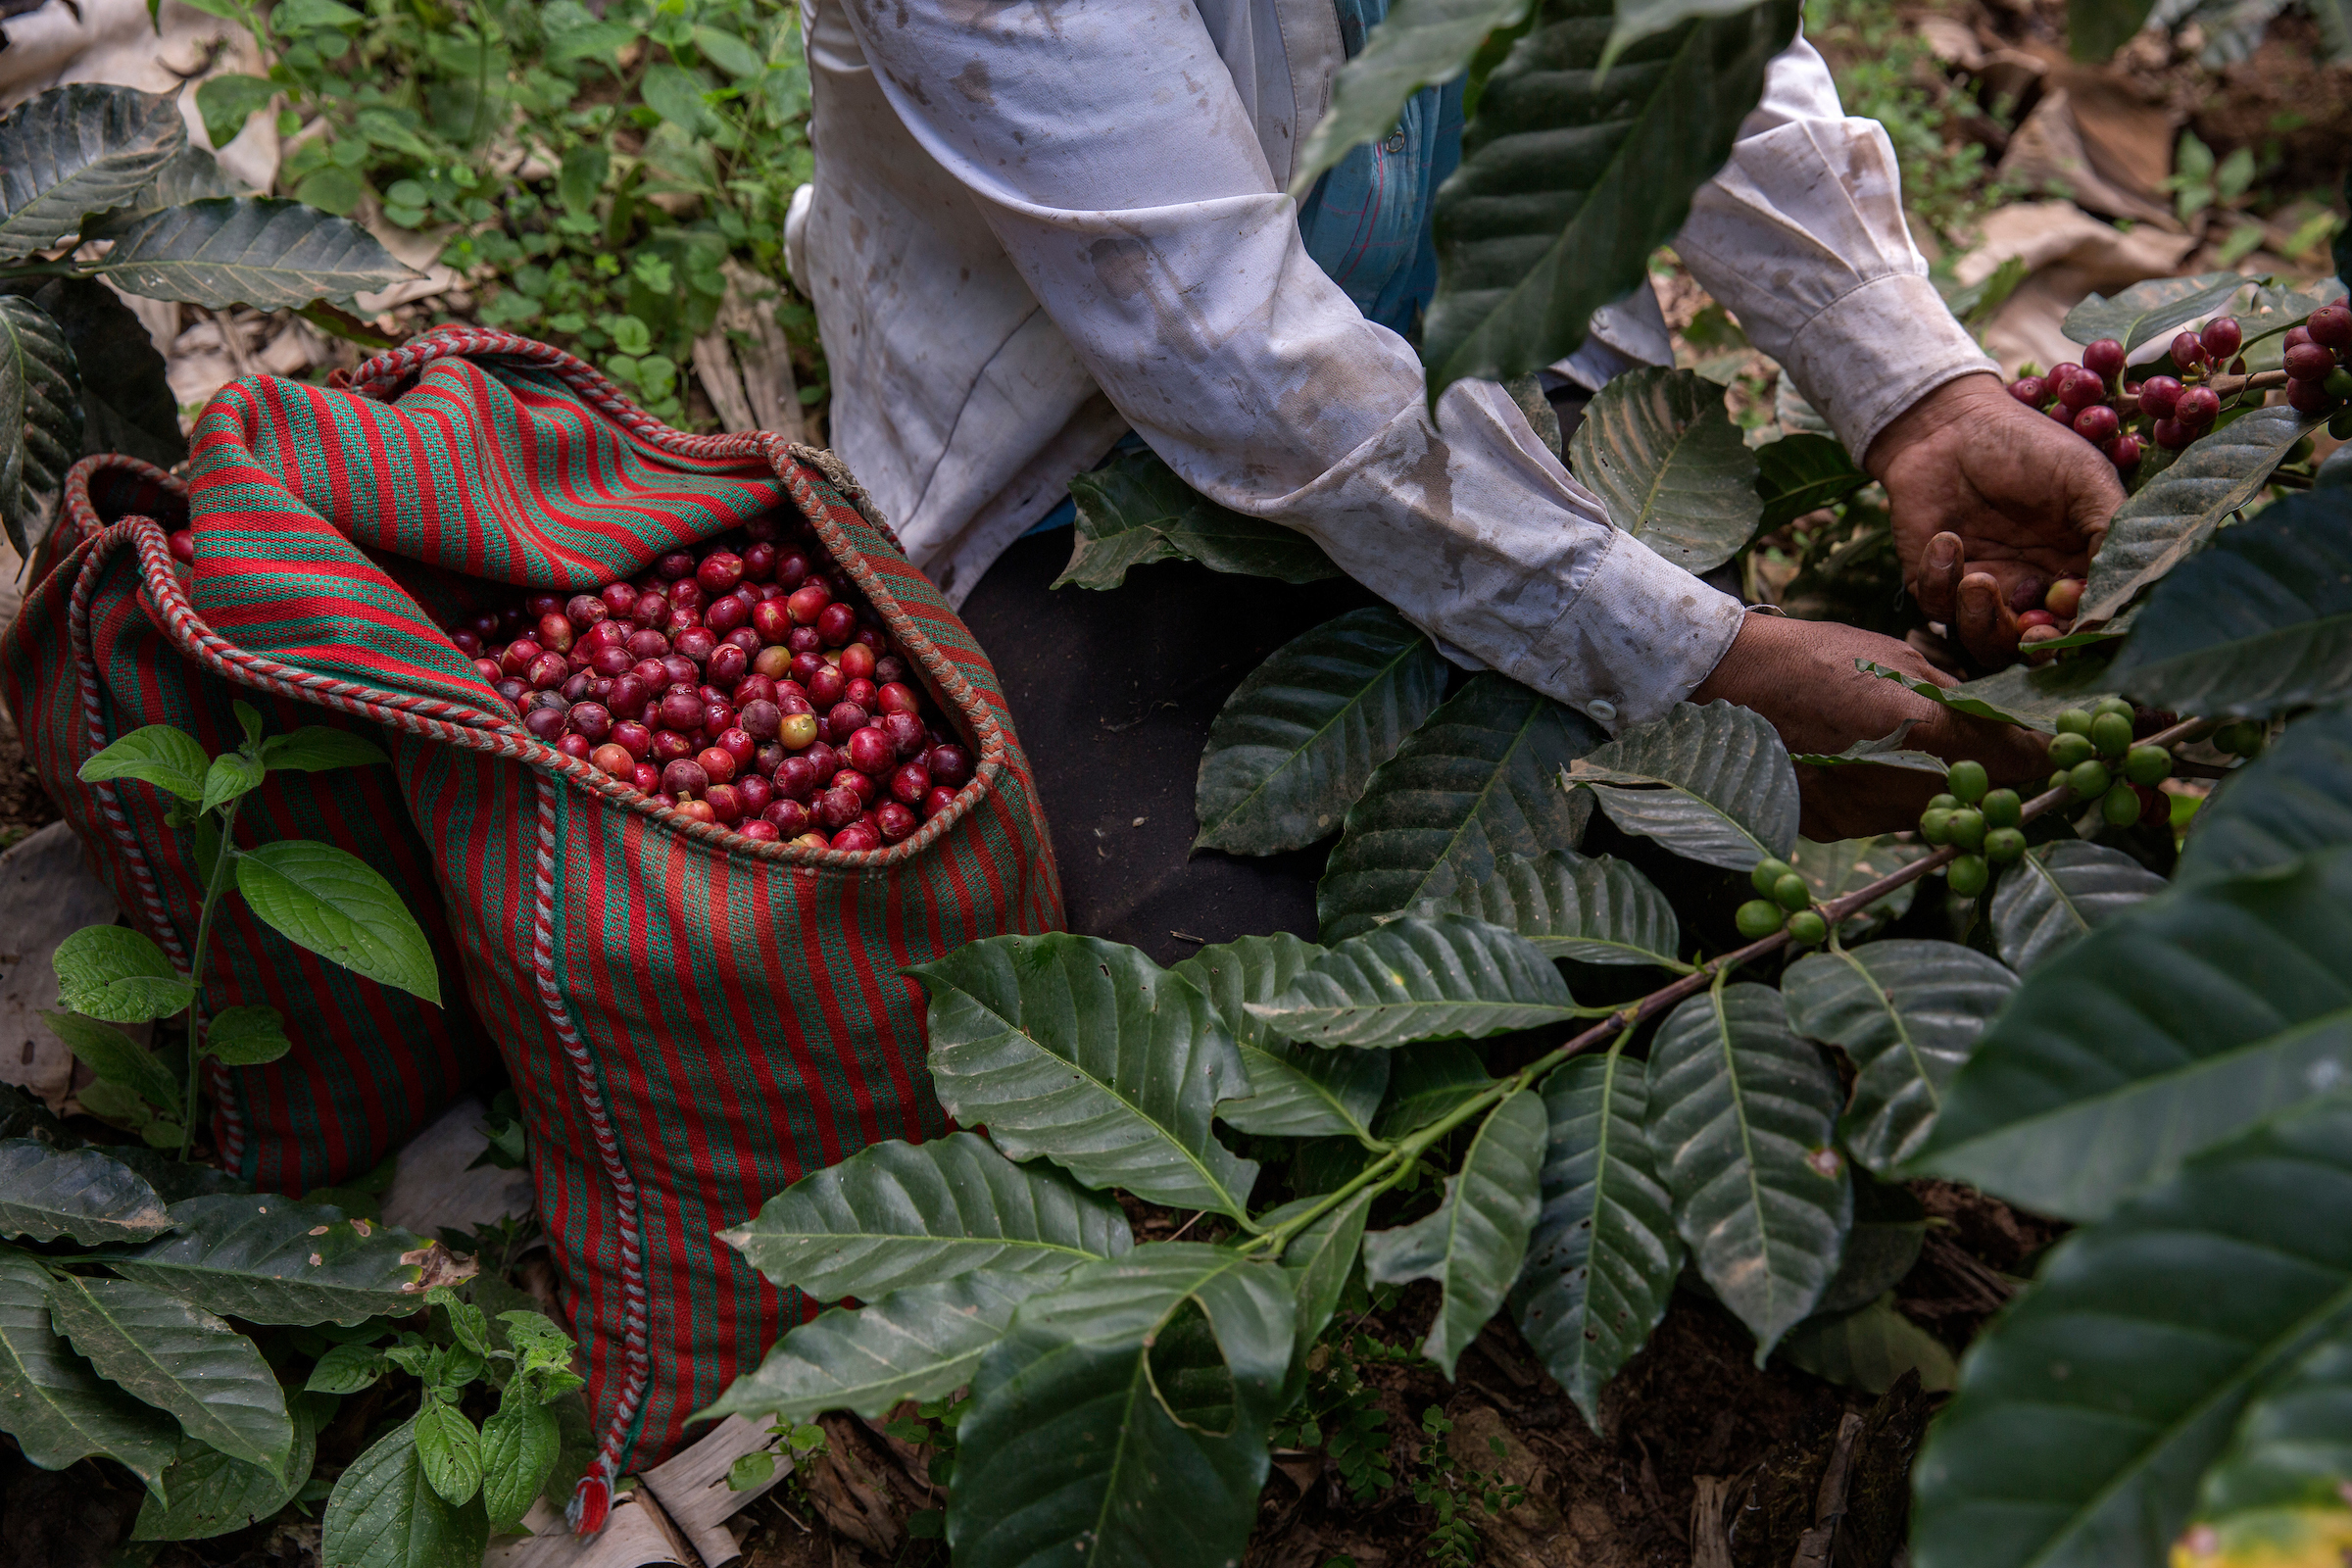 Workers in Piura harvest coffee cherries by hand